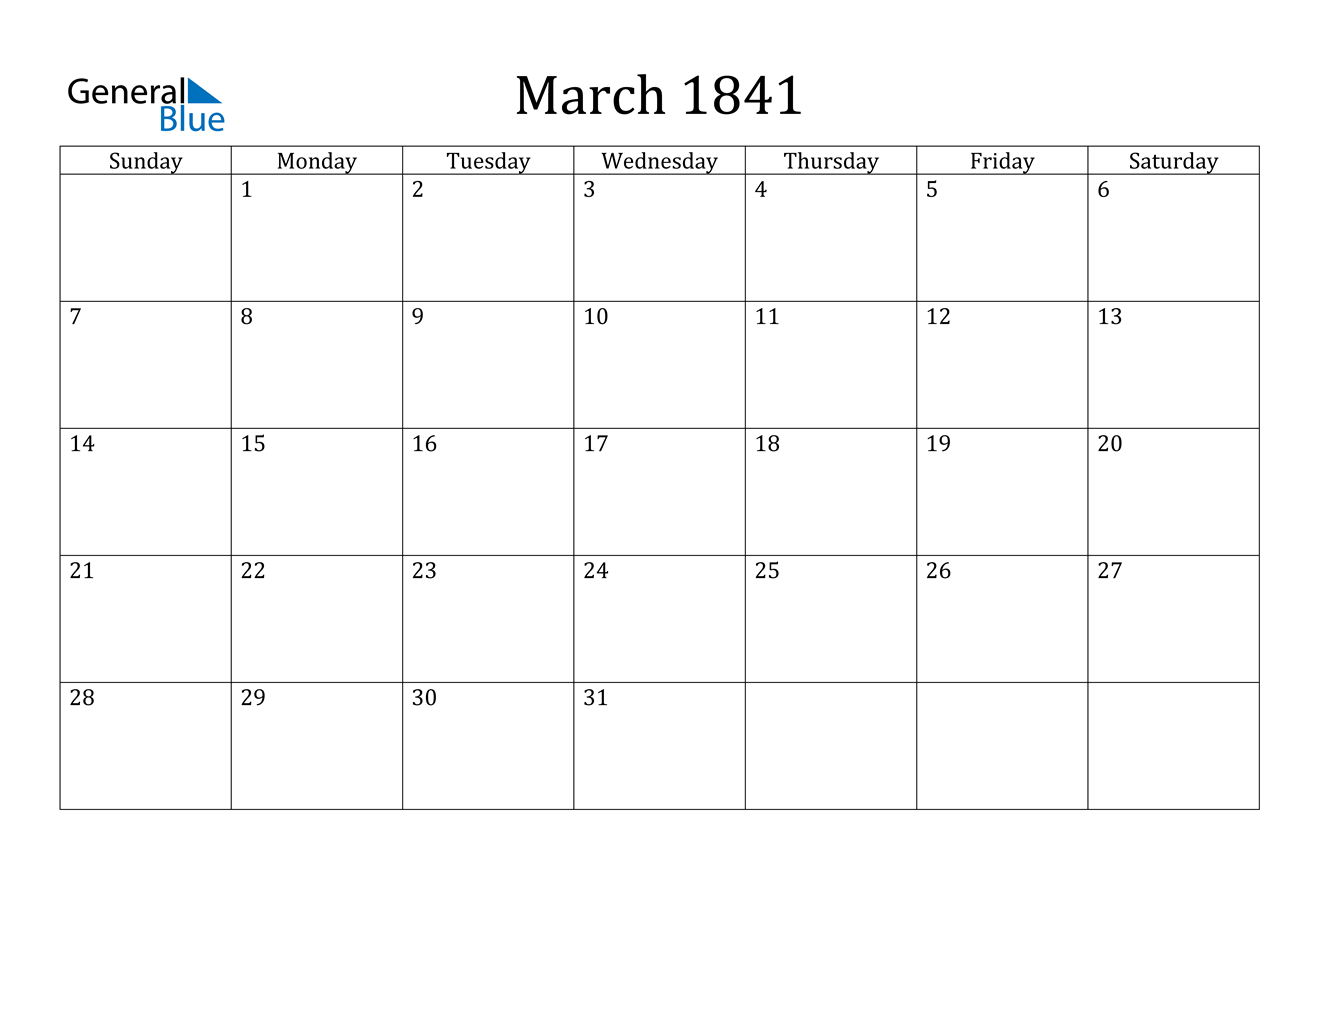 Image of March 1841 Calendar